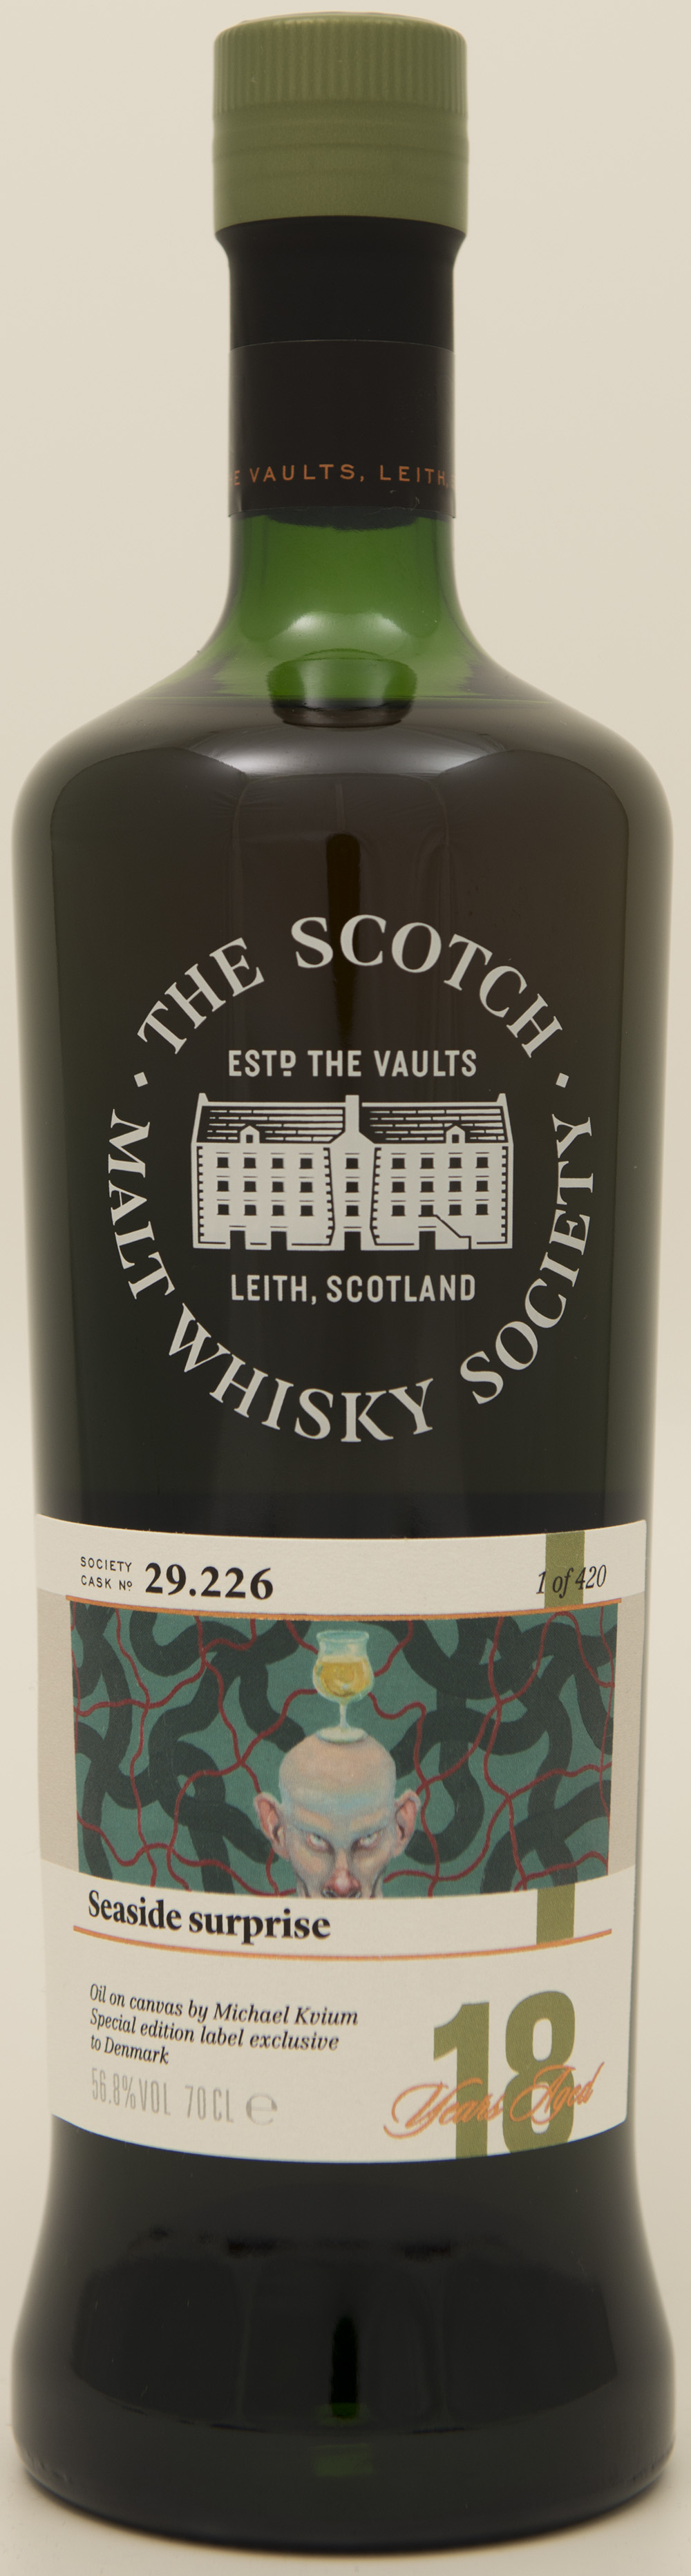 Billede: DSC_3668 - SMWS 29.226 - Seaside surprise (special label exclusive to Denmark).jpg